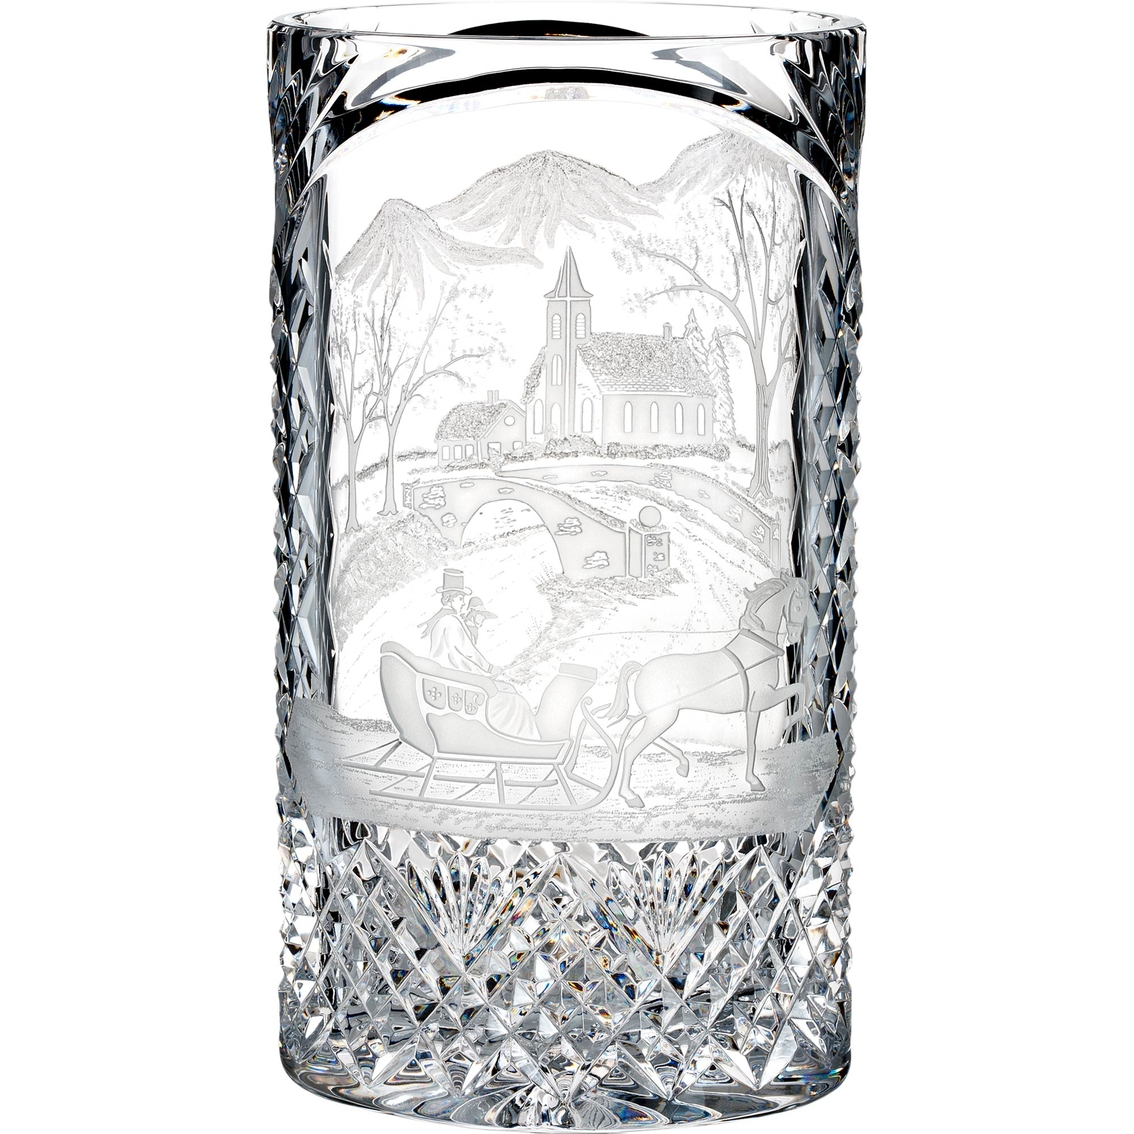 Waterford Crystal Christmas Decor Village Engraved Vase 12 In.